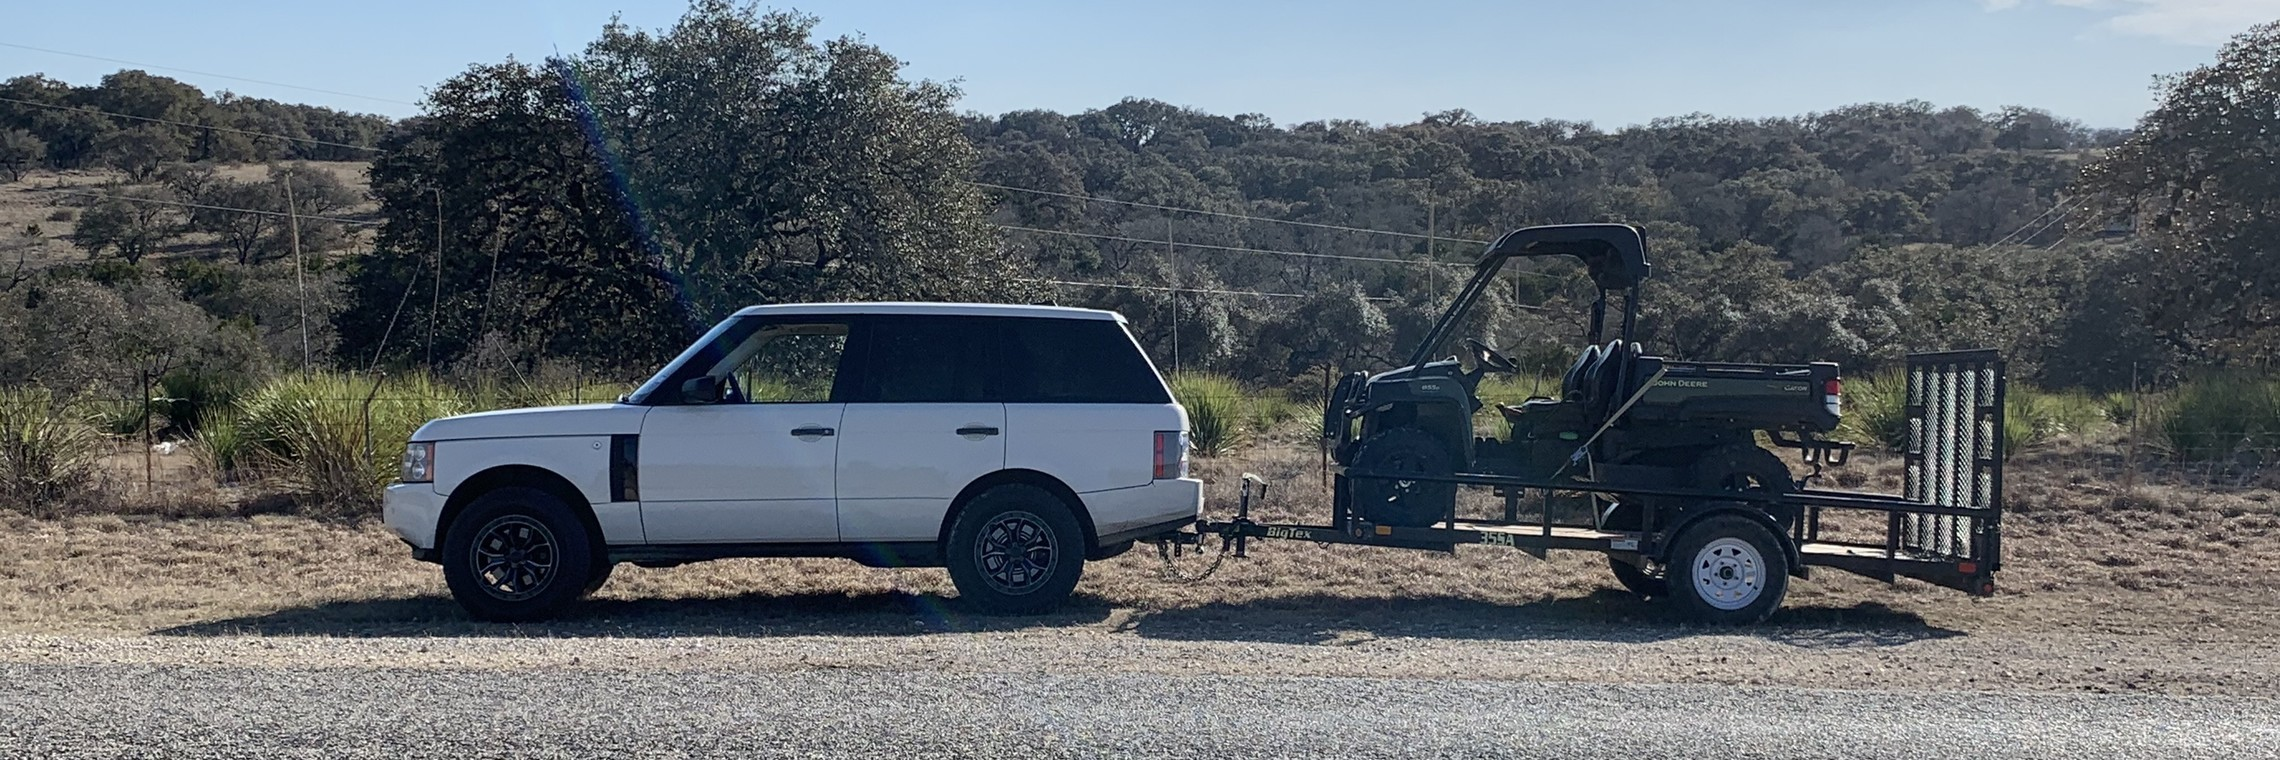 Image: Ranch-ready vehicles for treating oak wilt